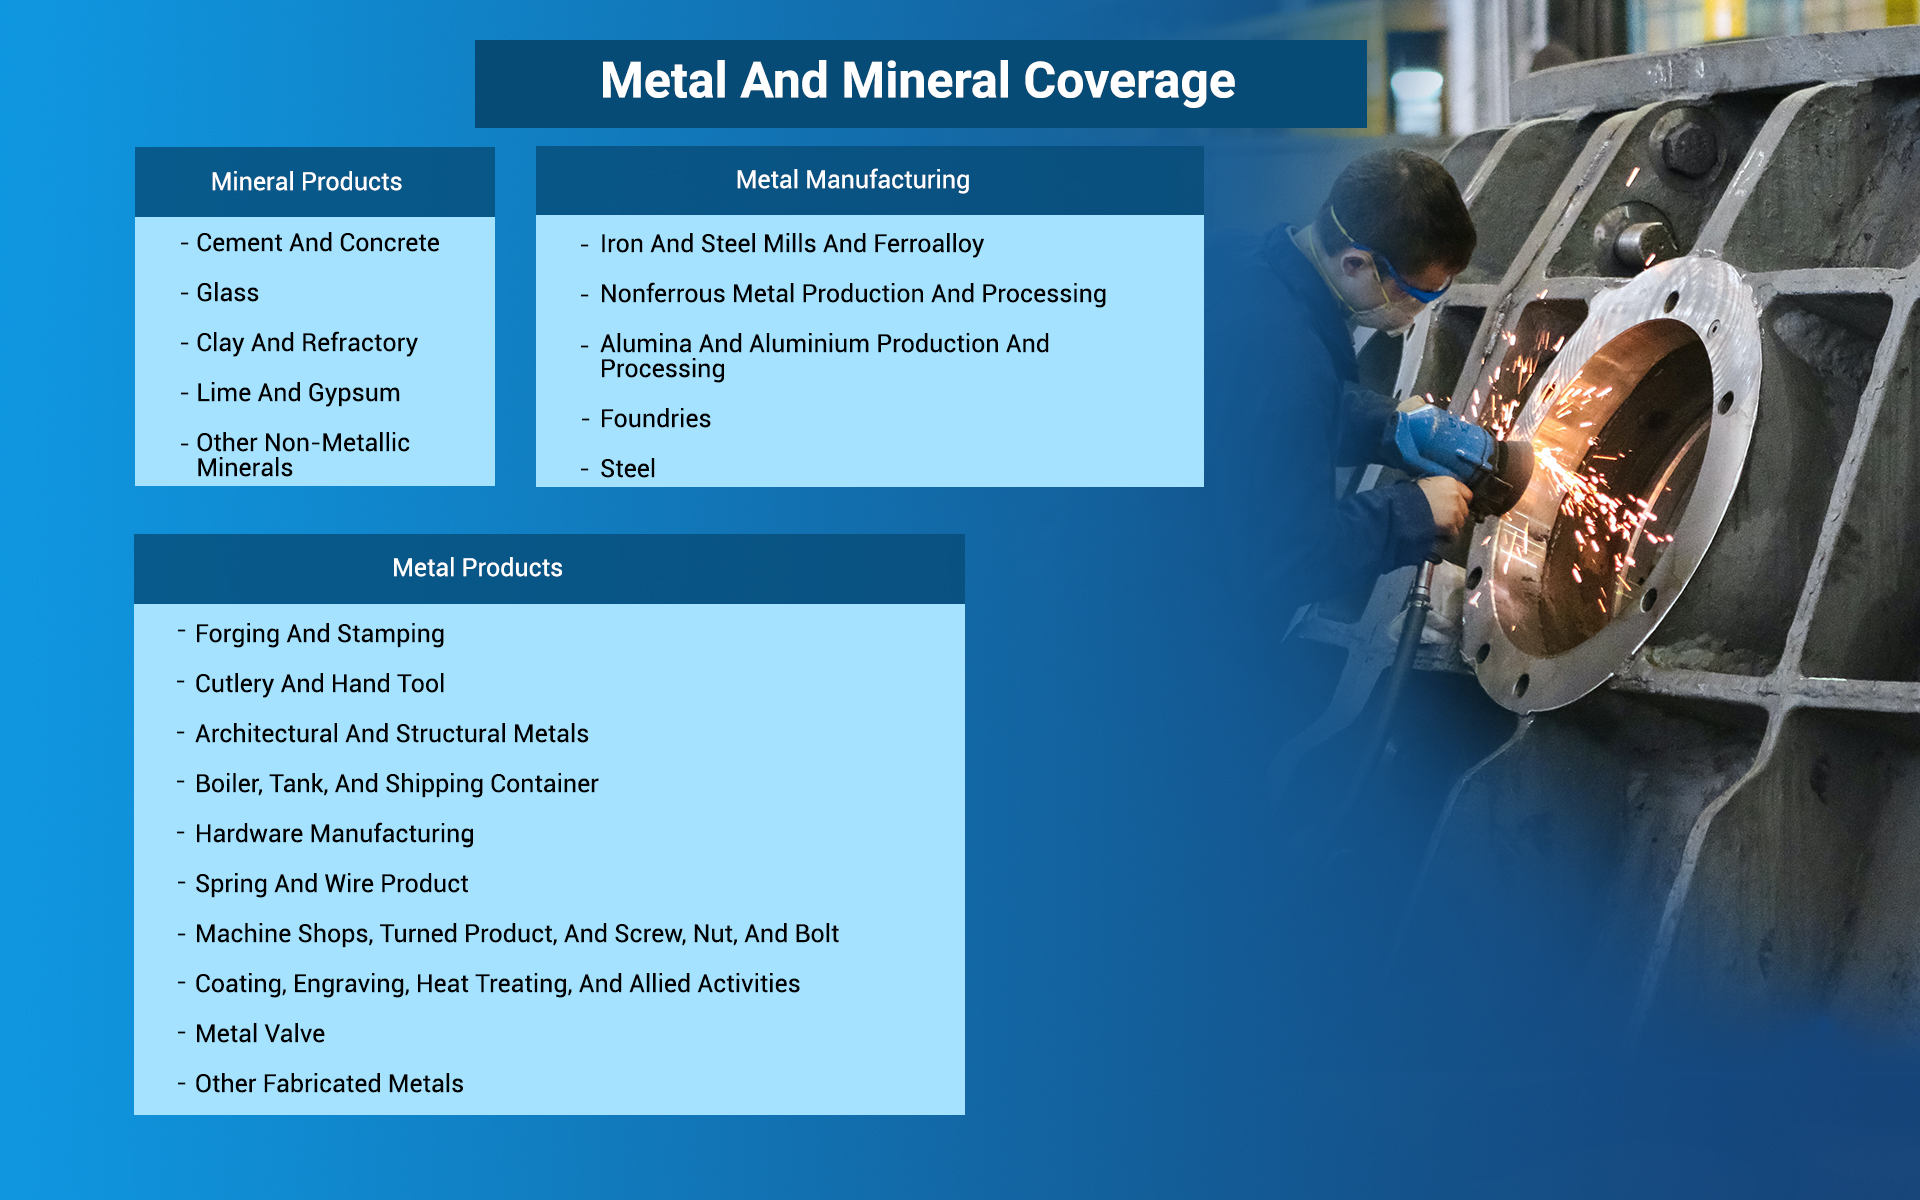 Metal and Mineral Manufacturing Coverage